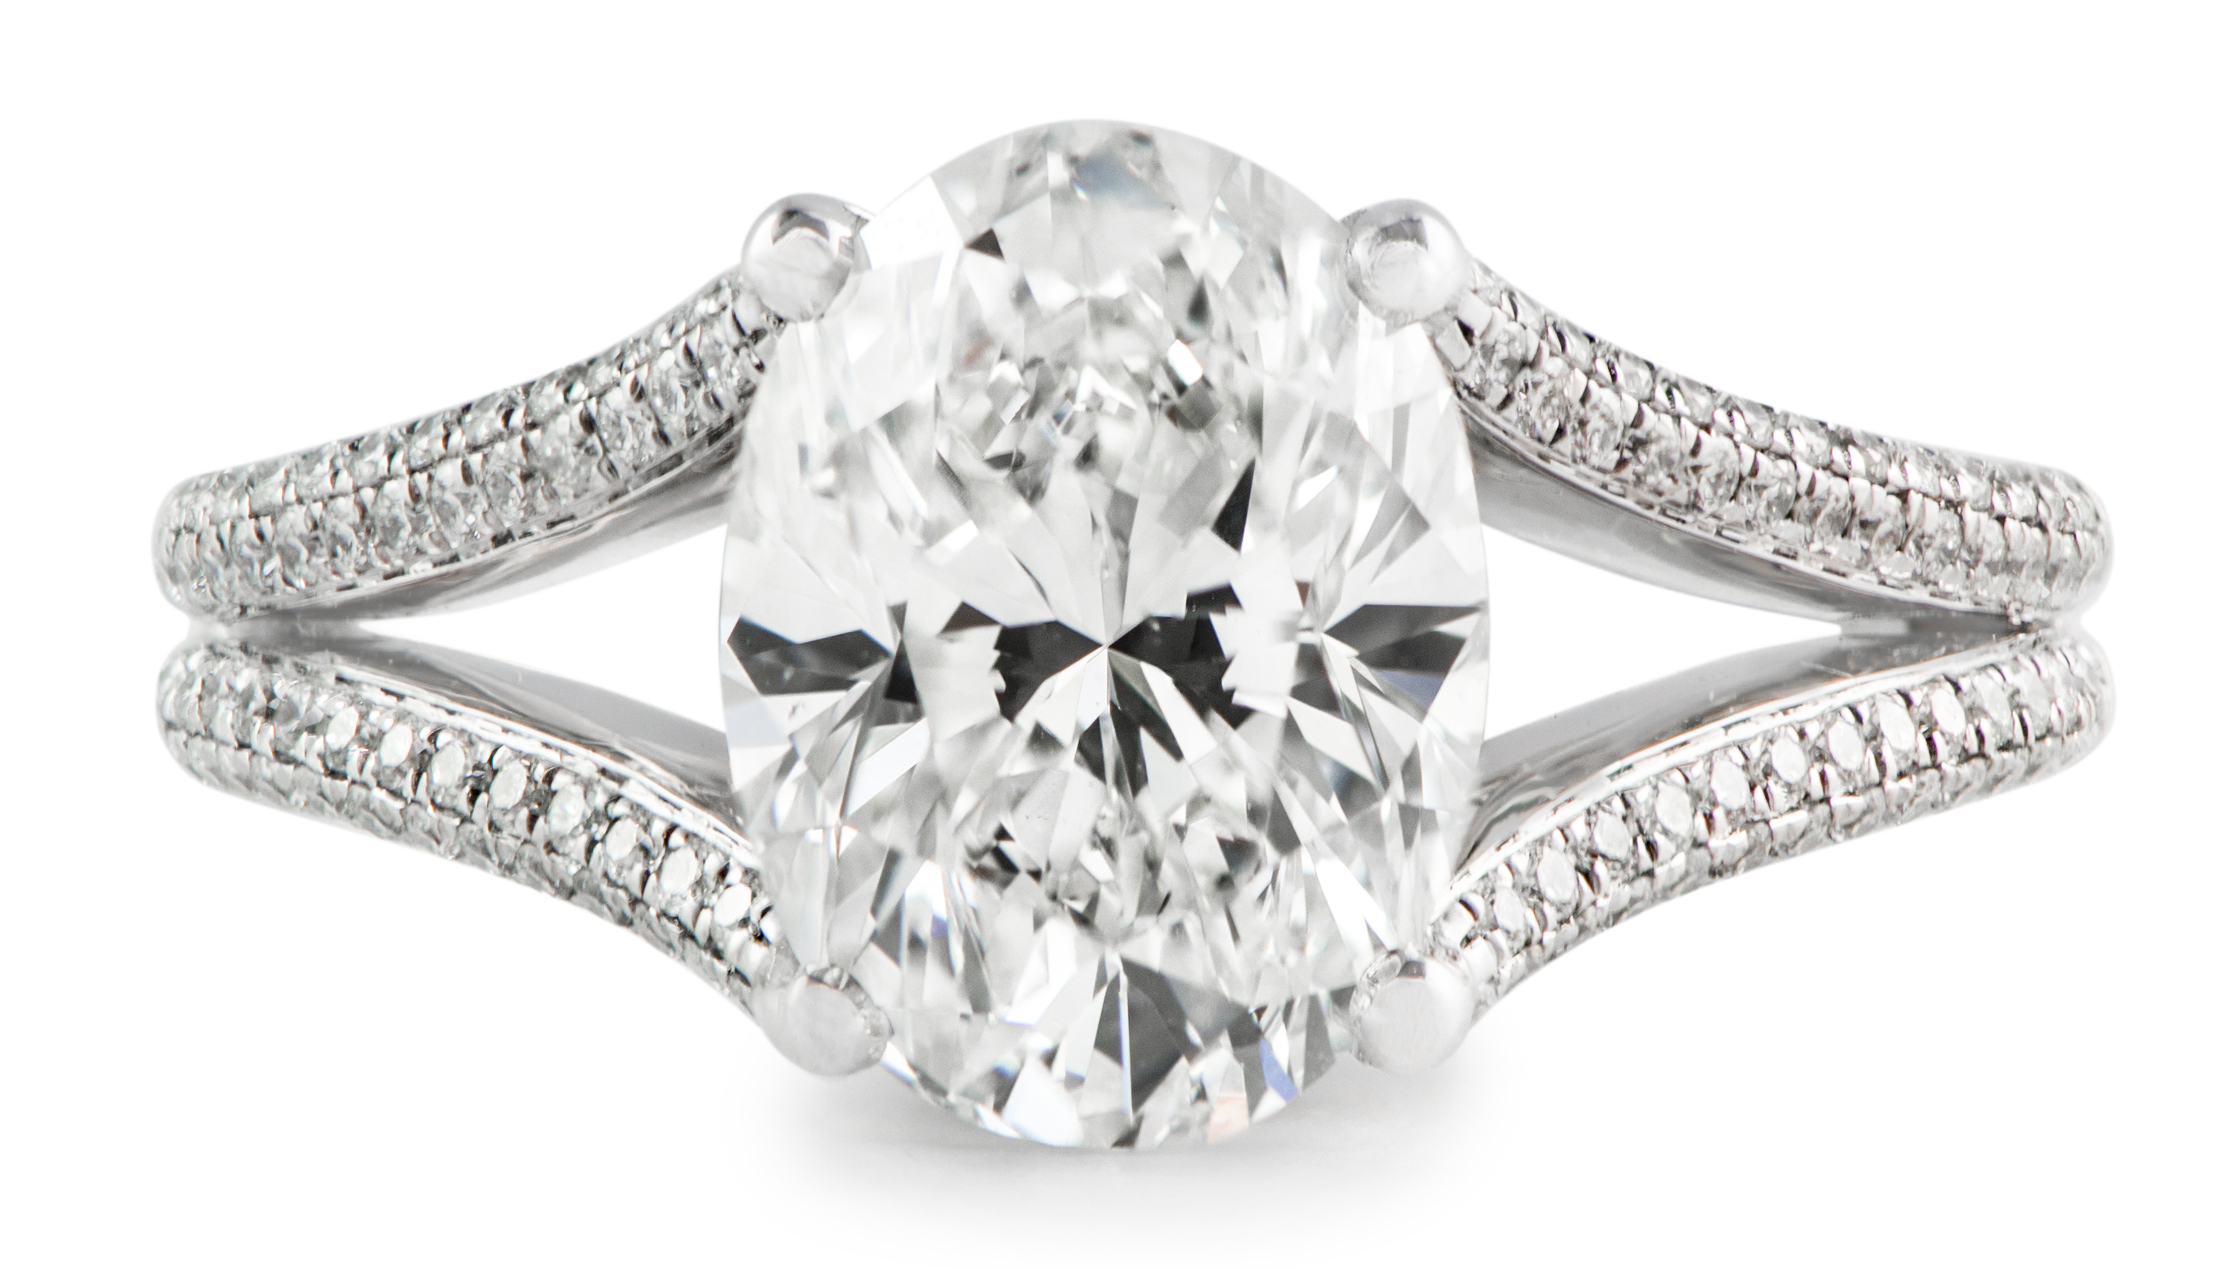 baguette mark rings takes stuller on patterson fresh side engagement halo ring stone